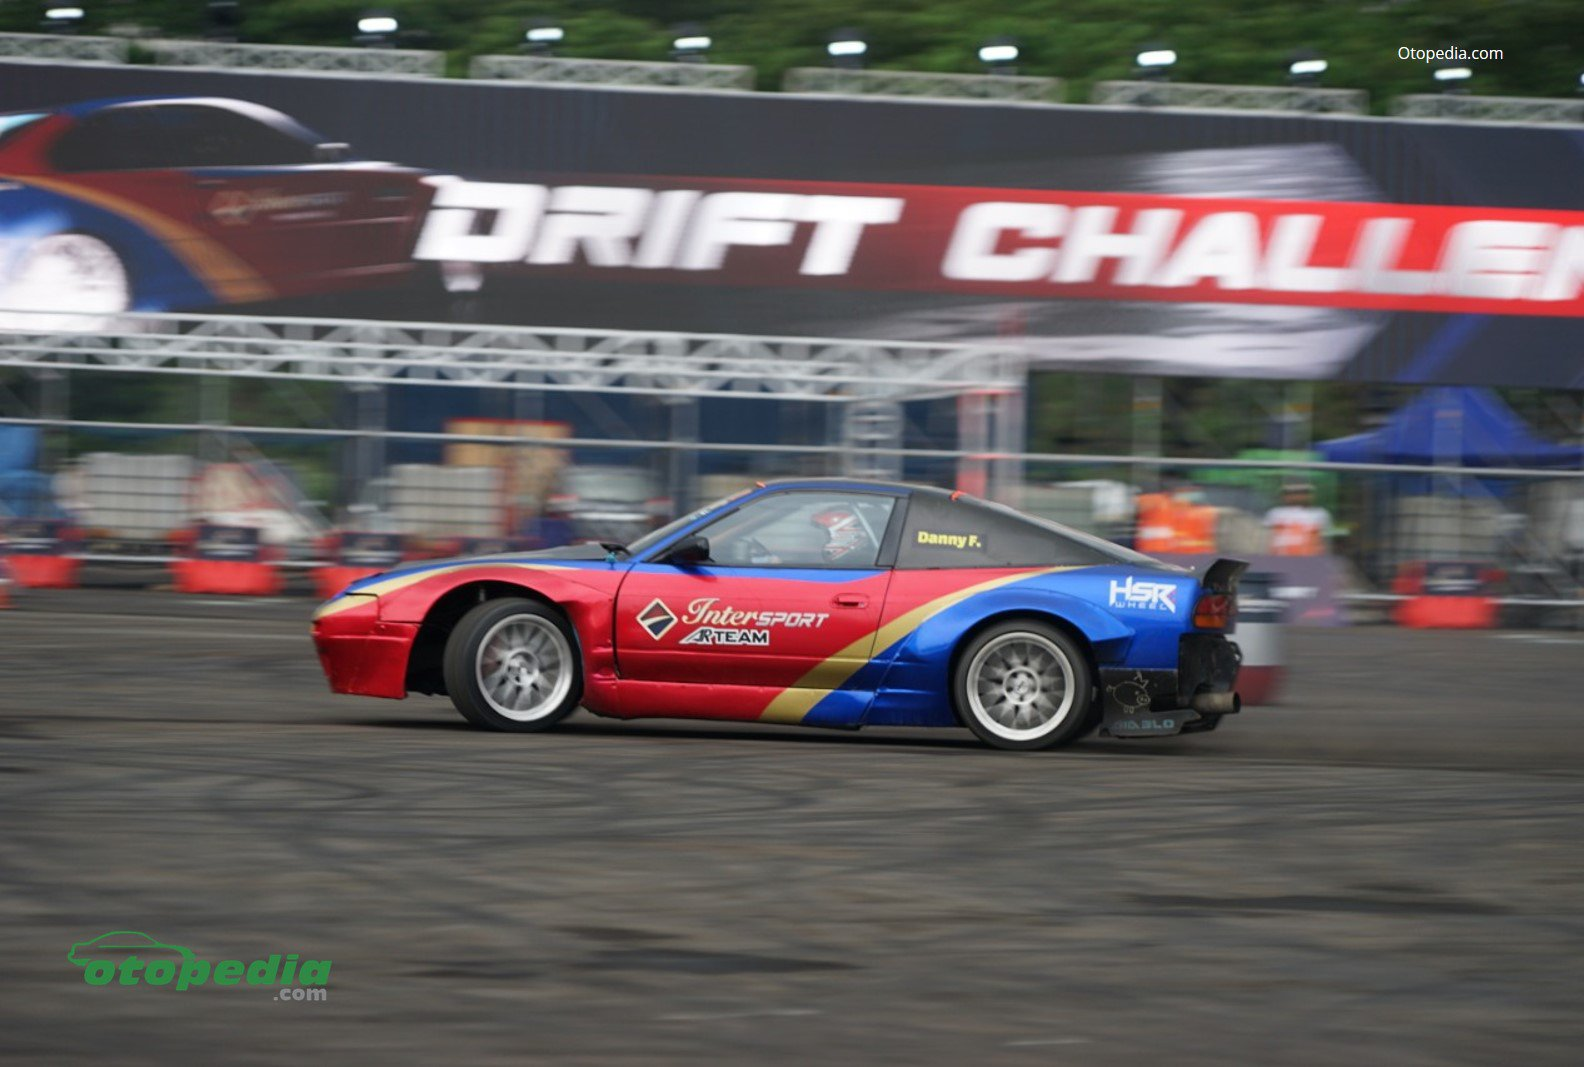 /media/images/IWS-drift-1.original.jpg